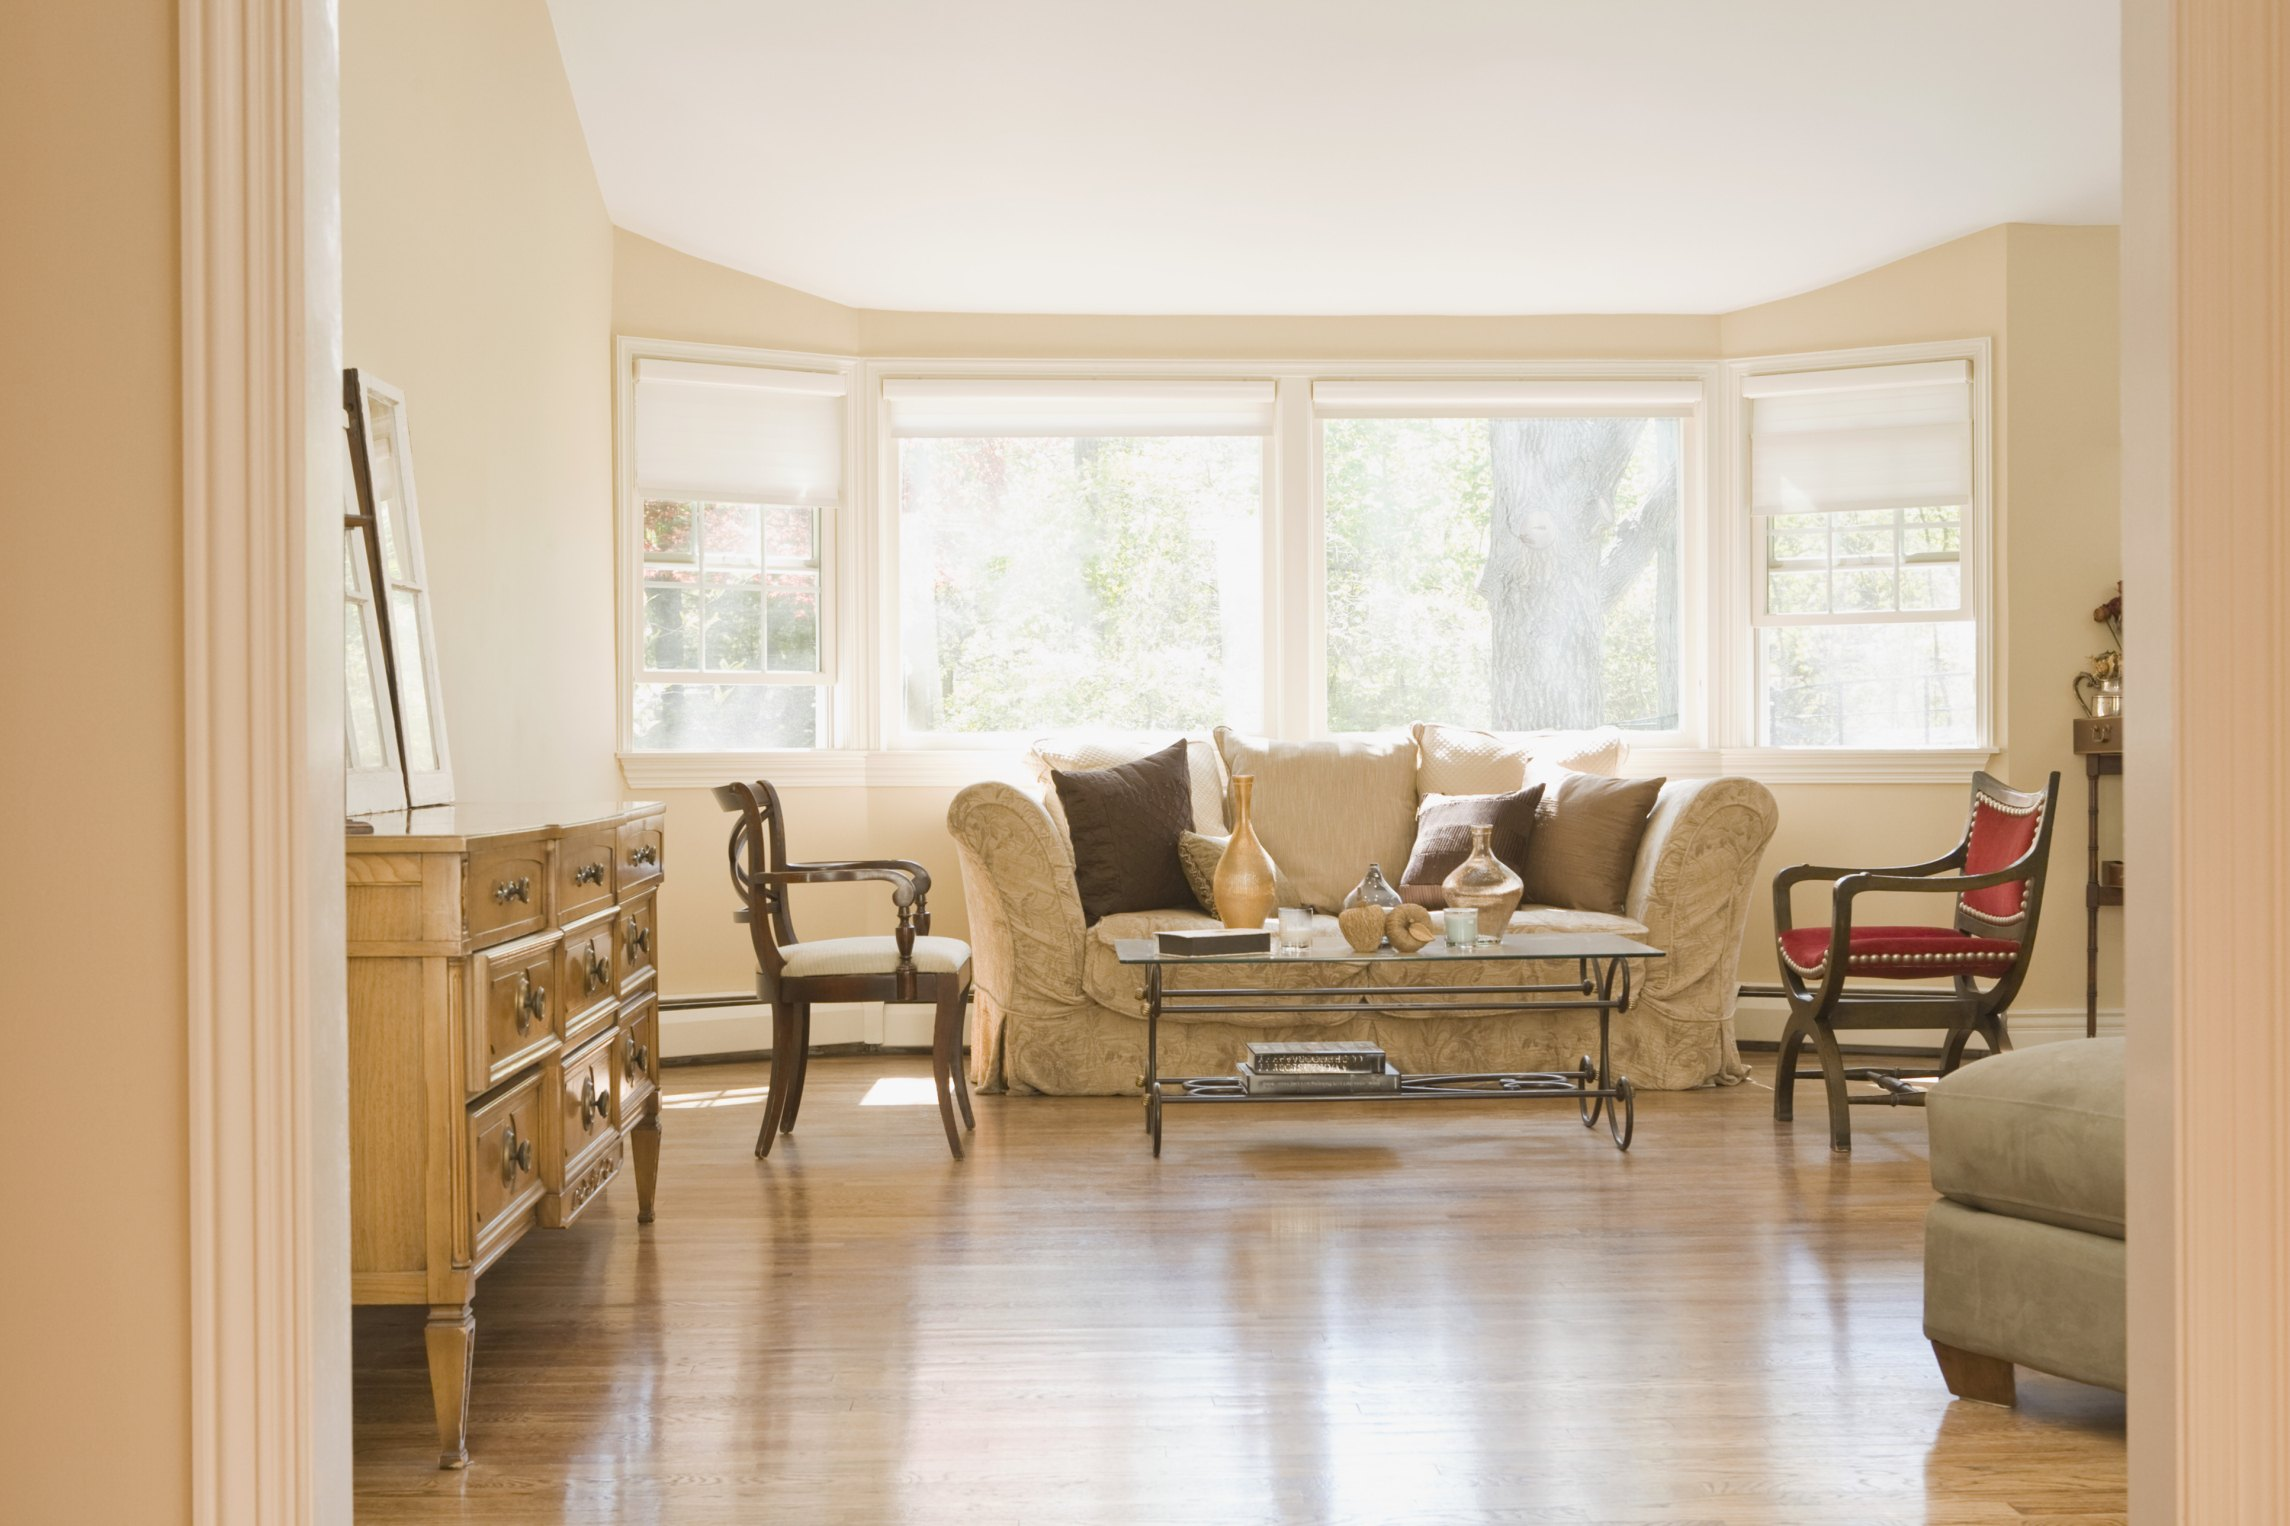 How To Cut Laminate Flooring For A Bay Window Area Ehow